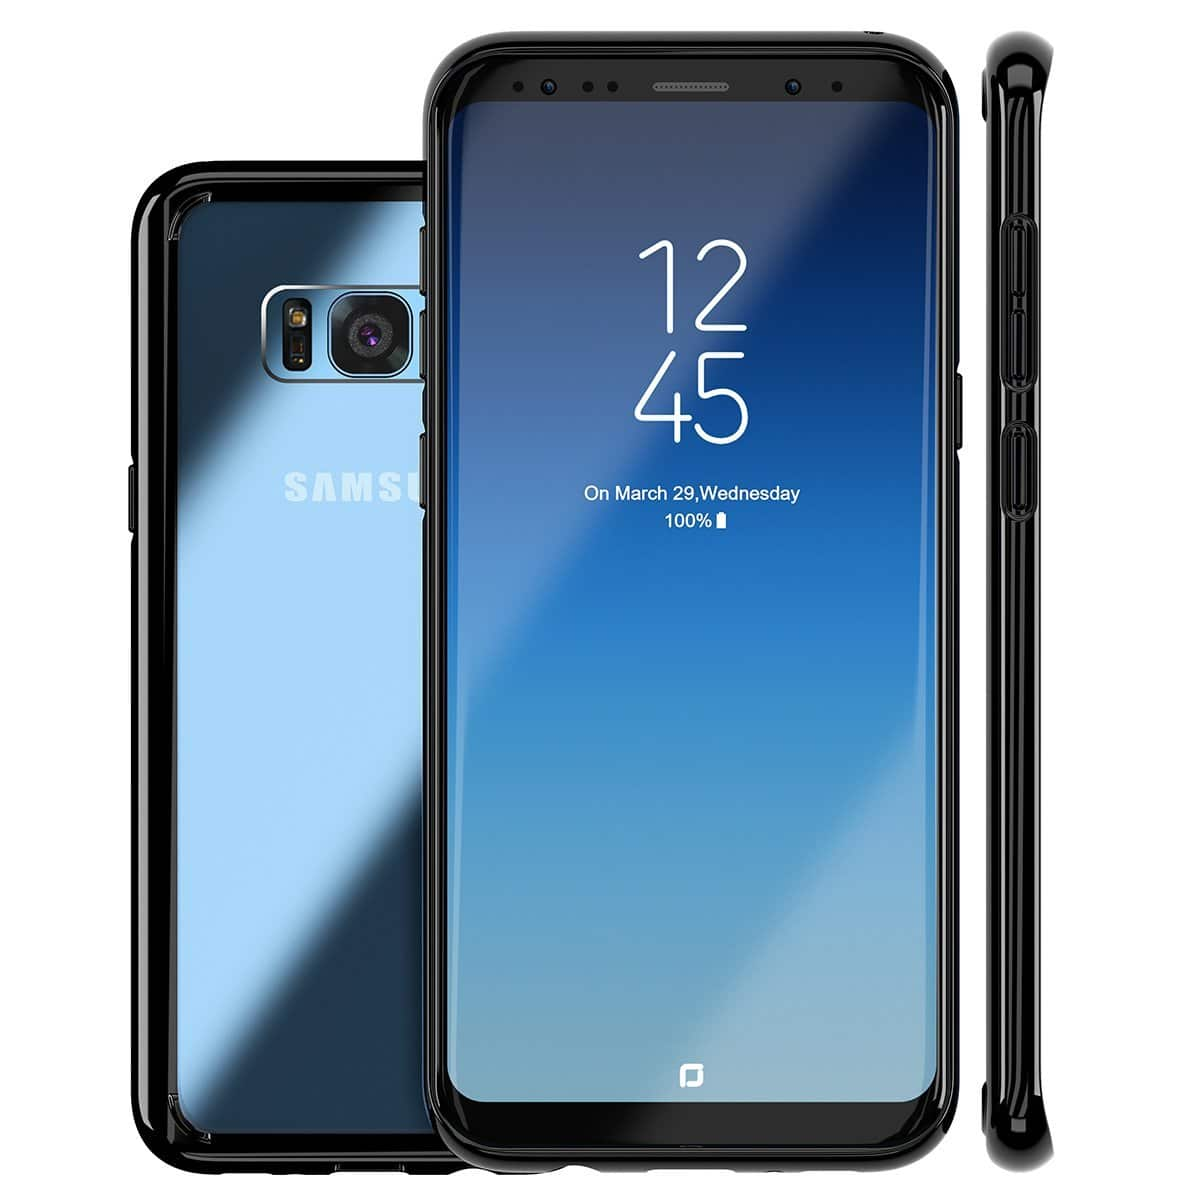 Samsung Galaxy S8+ TPU Protect Cover Case $3.90 AC, Apple iPhone X Cases $2.90 / $3.90 / $4.94 AC